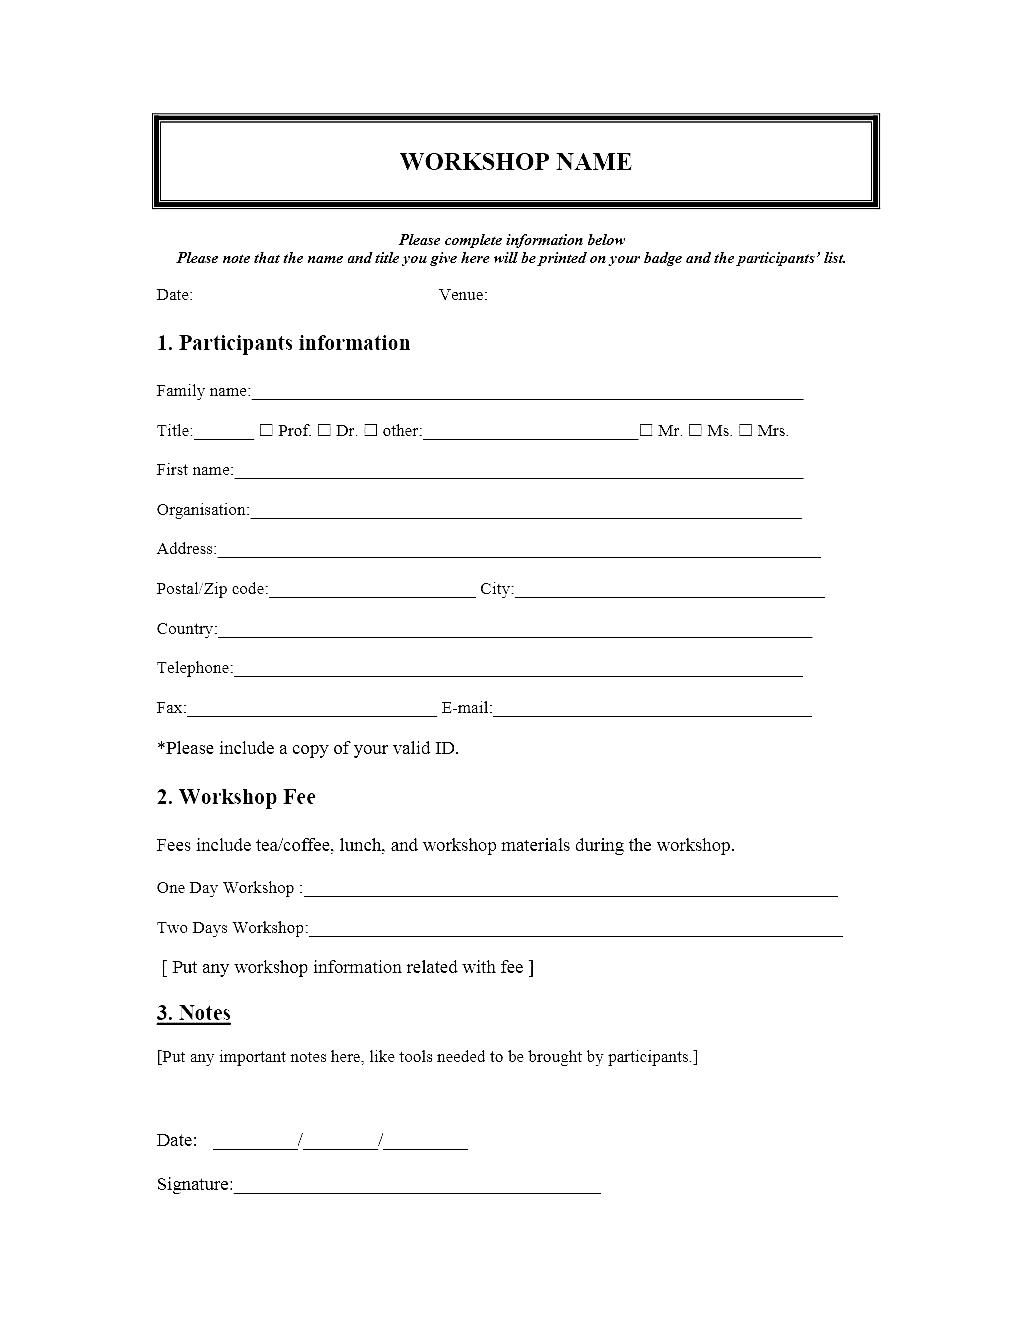 Event Registration Form Template Microsoft Word | Besttemplate123 ...